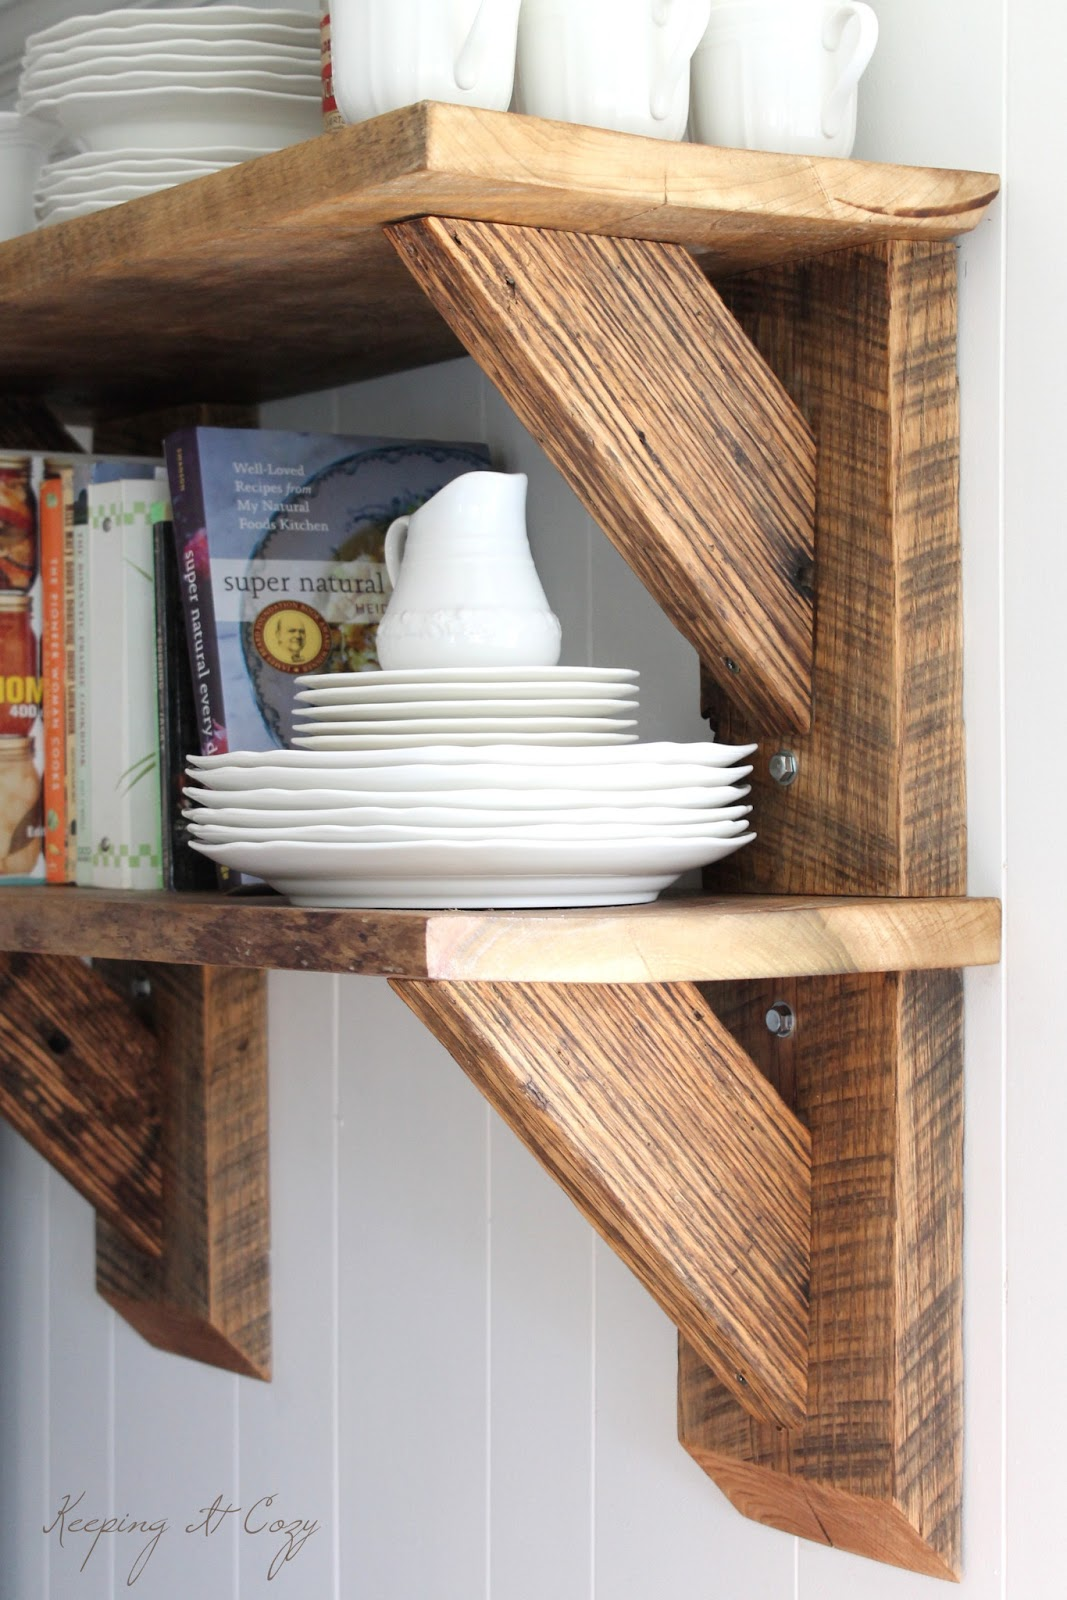 Keeping it cozy reclaimed wood kitchen shelves for Easy diy shelves